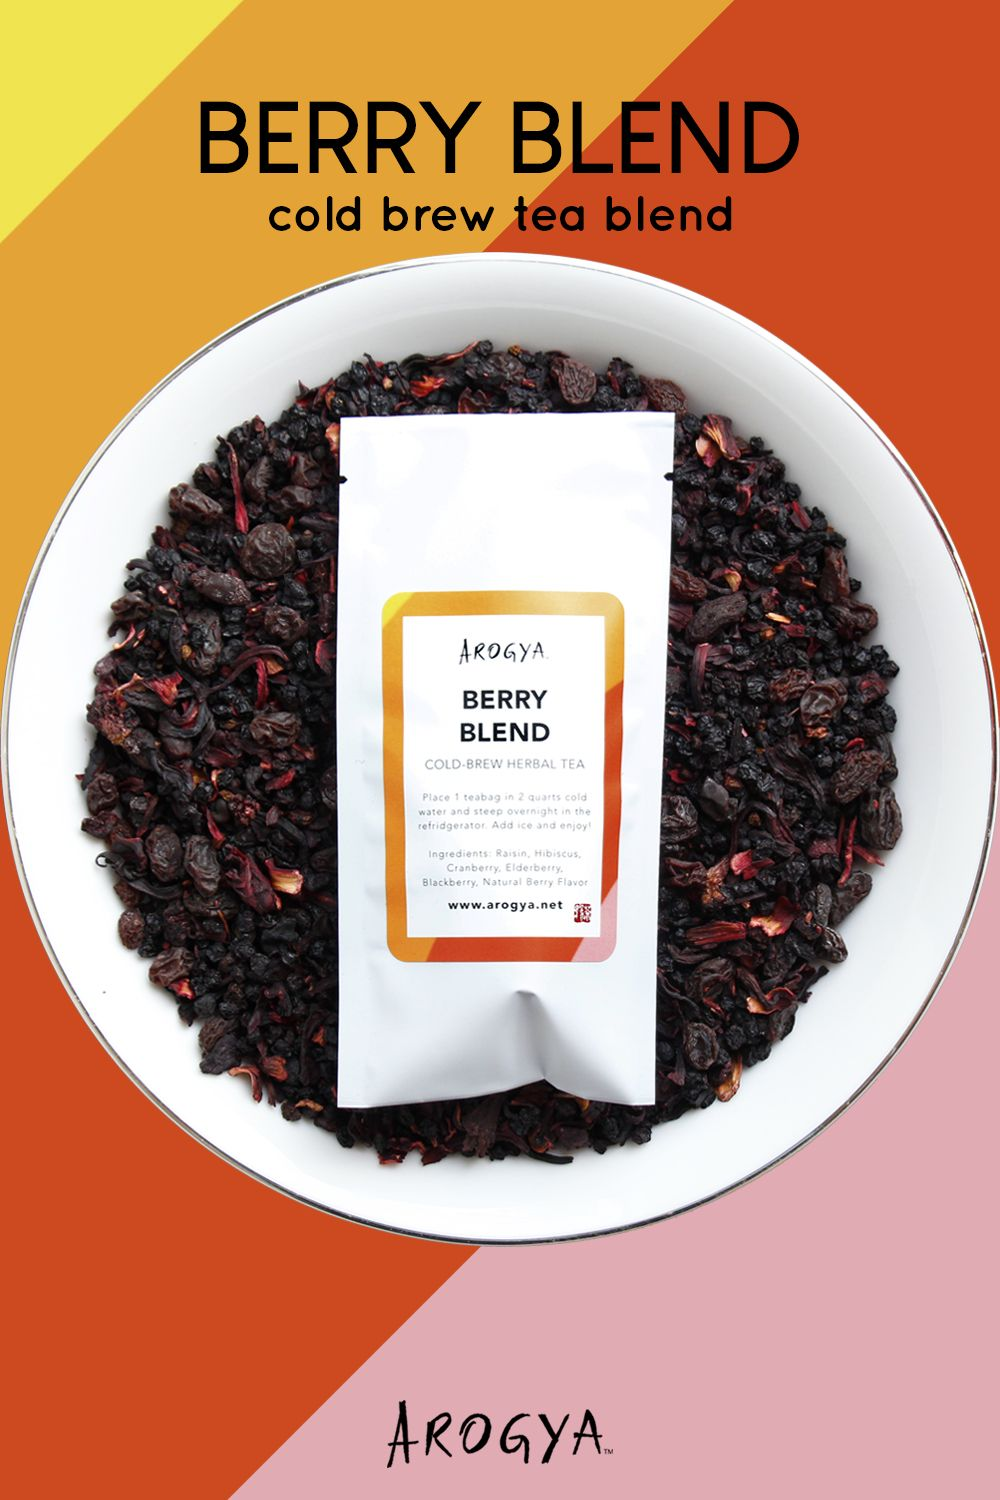 Berry Blend Cold Brew Tea Bags A mouth-watering burst of juicy fruit flavor gives this iced tea high marks with the kids and it packs a powerhouse of nutrients and antioxidants to make it a wholesome treat for anyone to enjoy. Each sachet contains 1/2 ounce of tea and makes 2 quarts of iced tea.